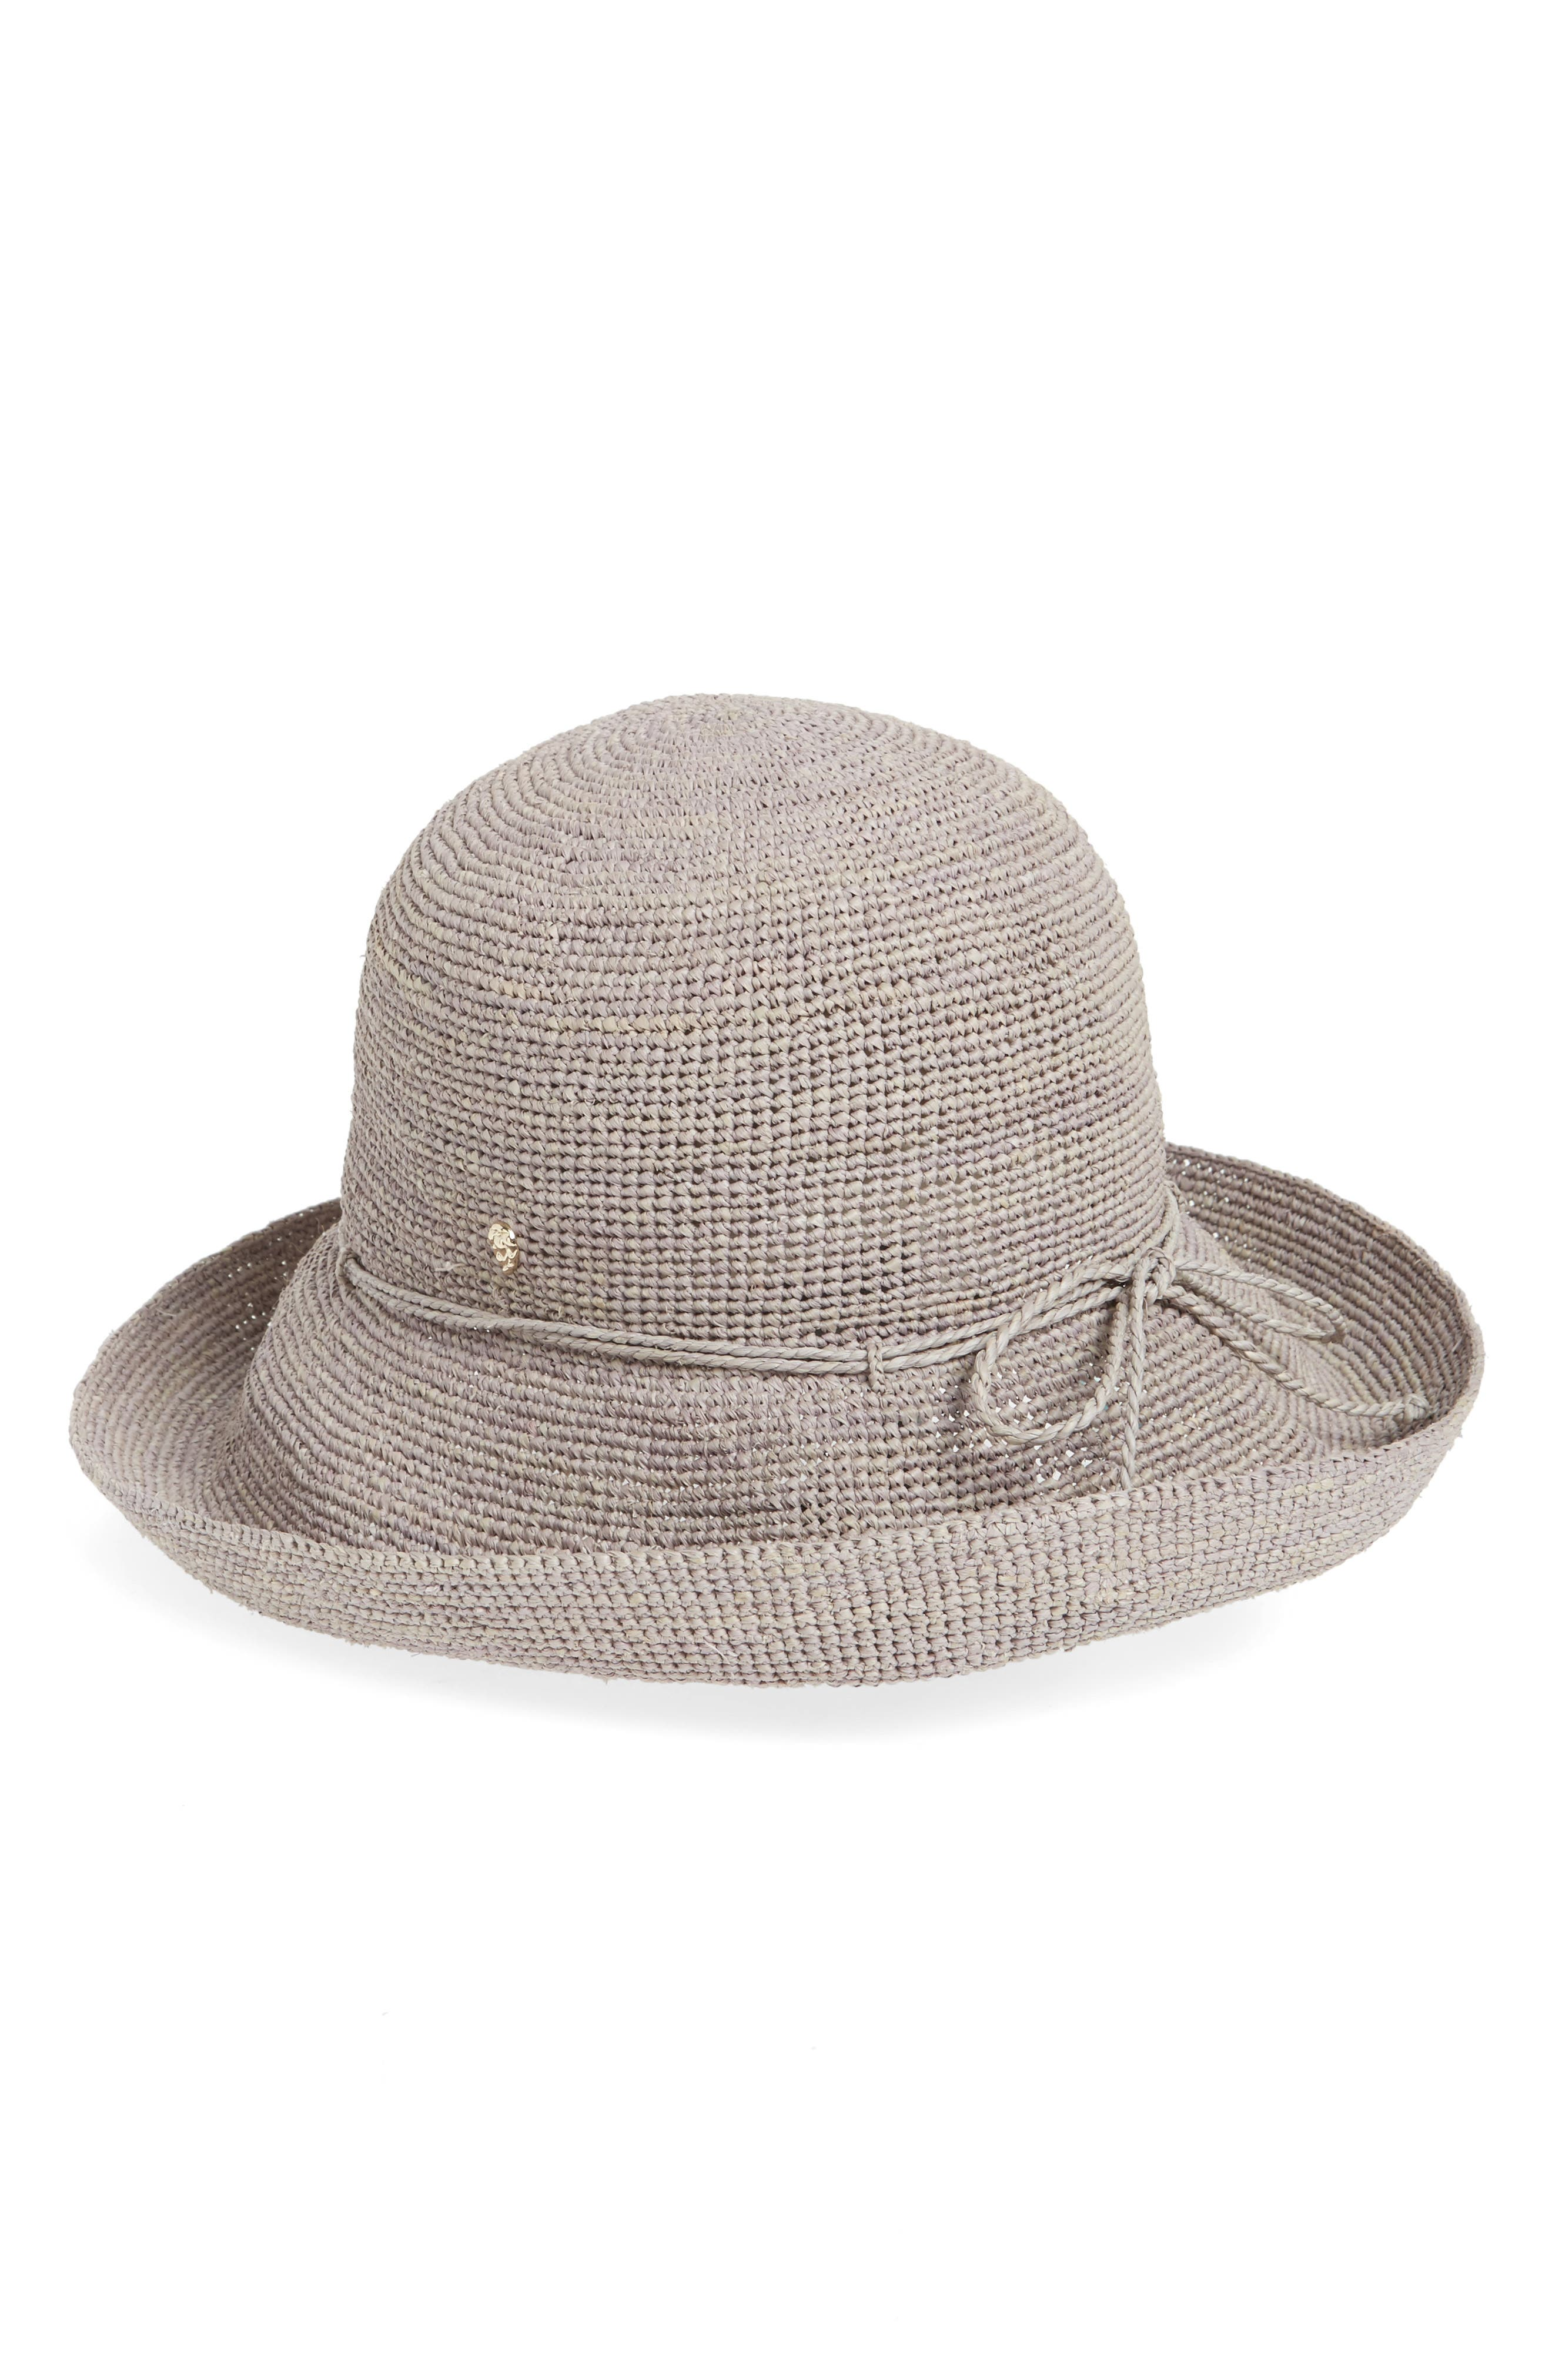 'Provence 10' Packable Raffia Hat,                             Main thumbnail 1, color,                             025